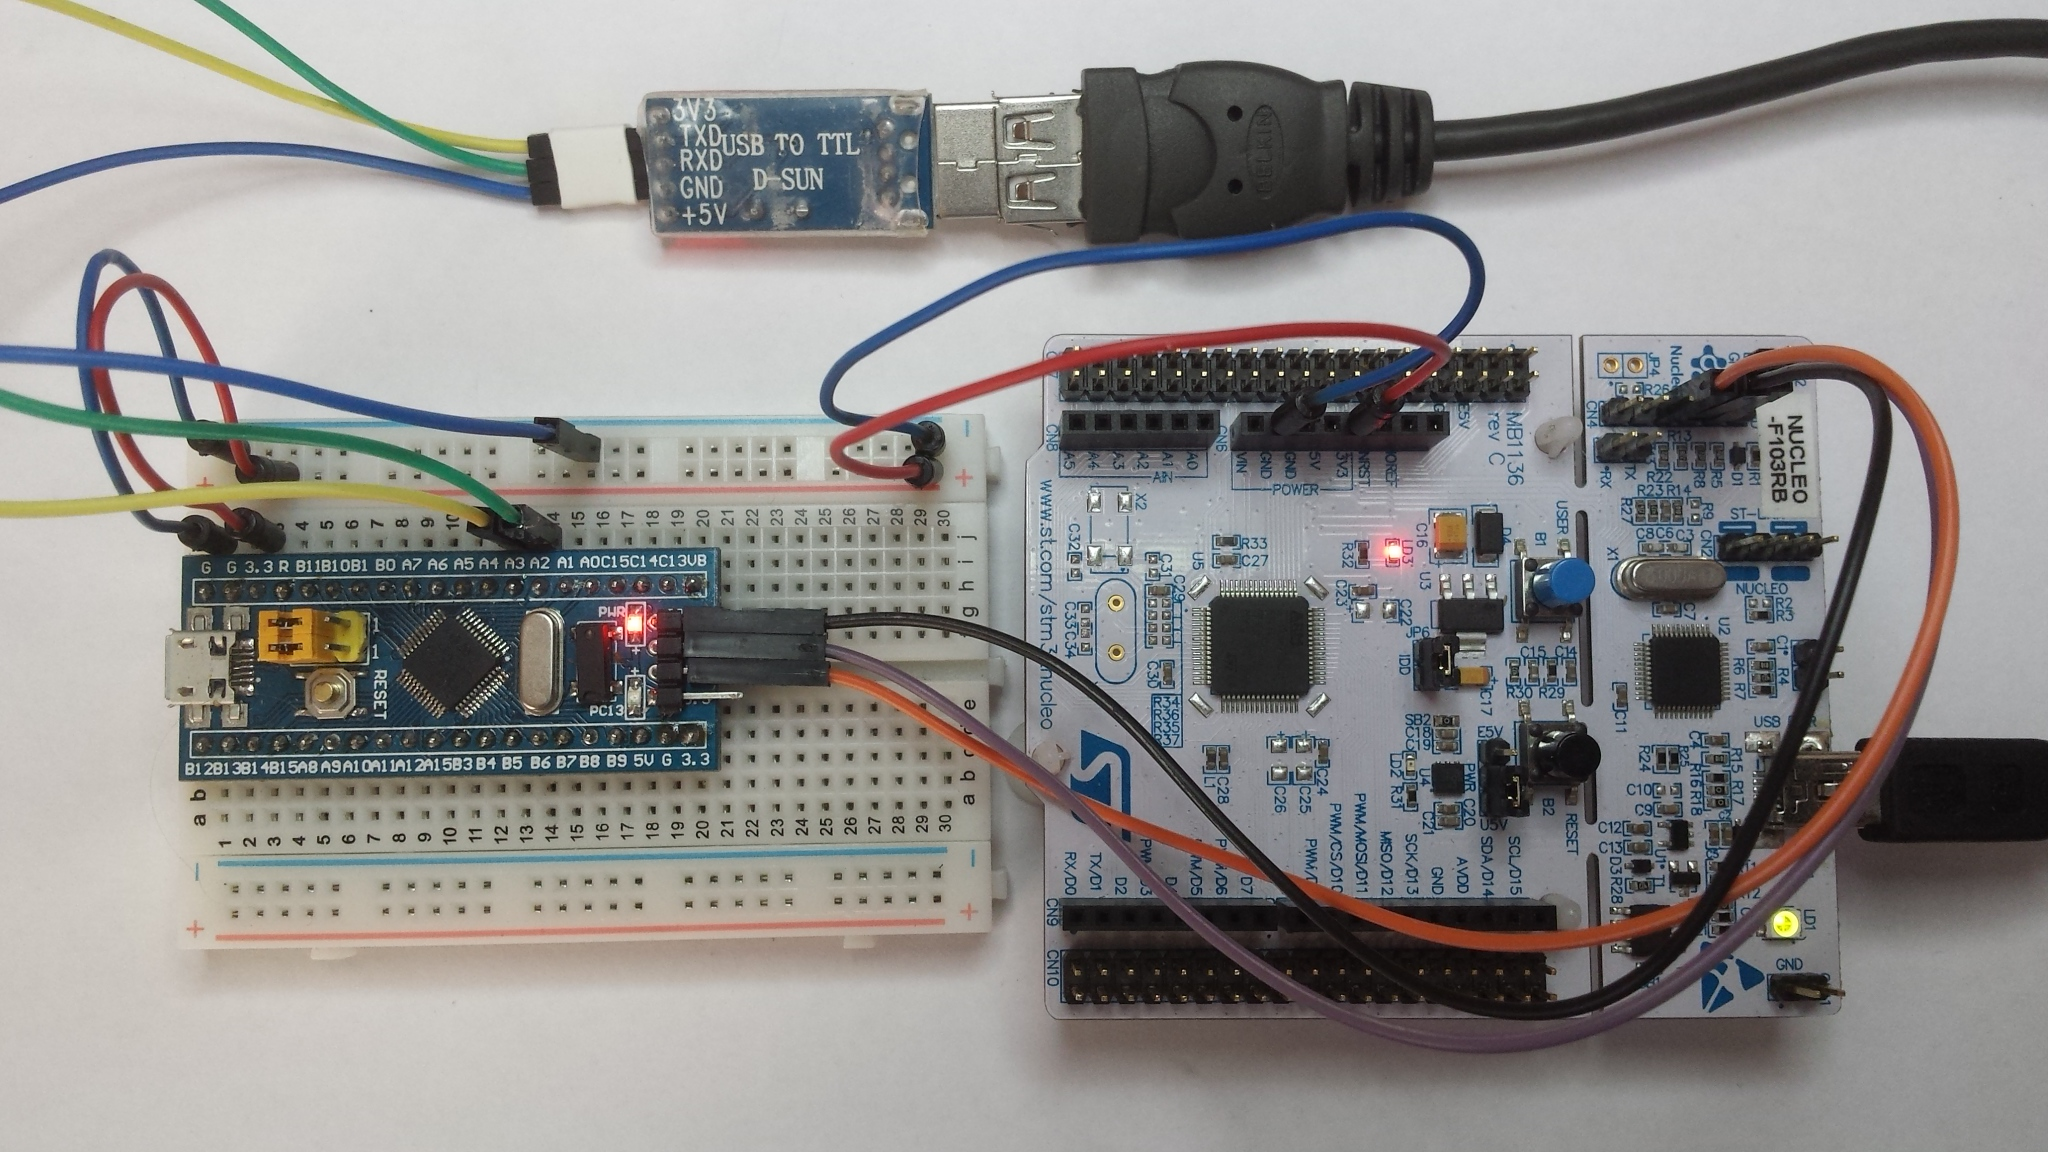 STM32F103C8T6_Hello - Using low cost Blue Pill